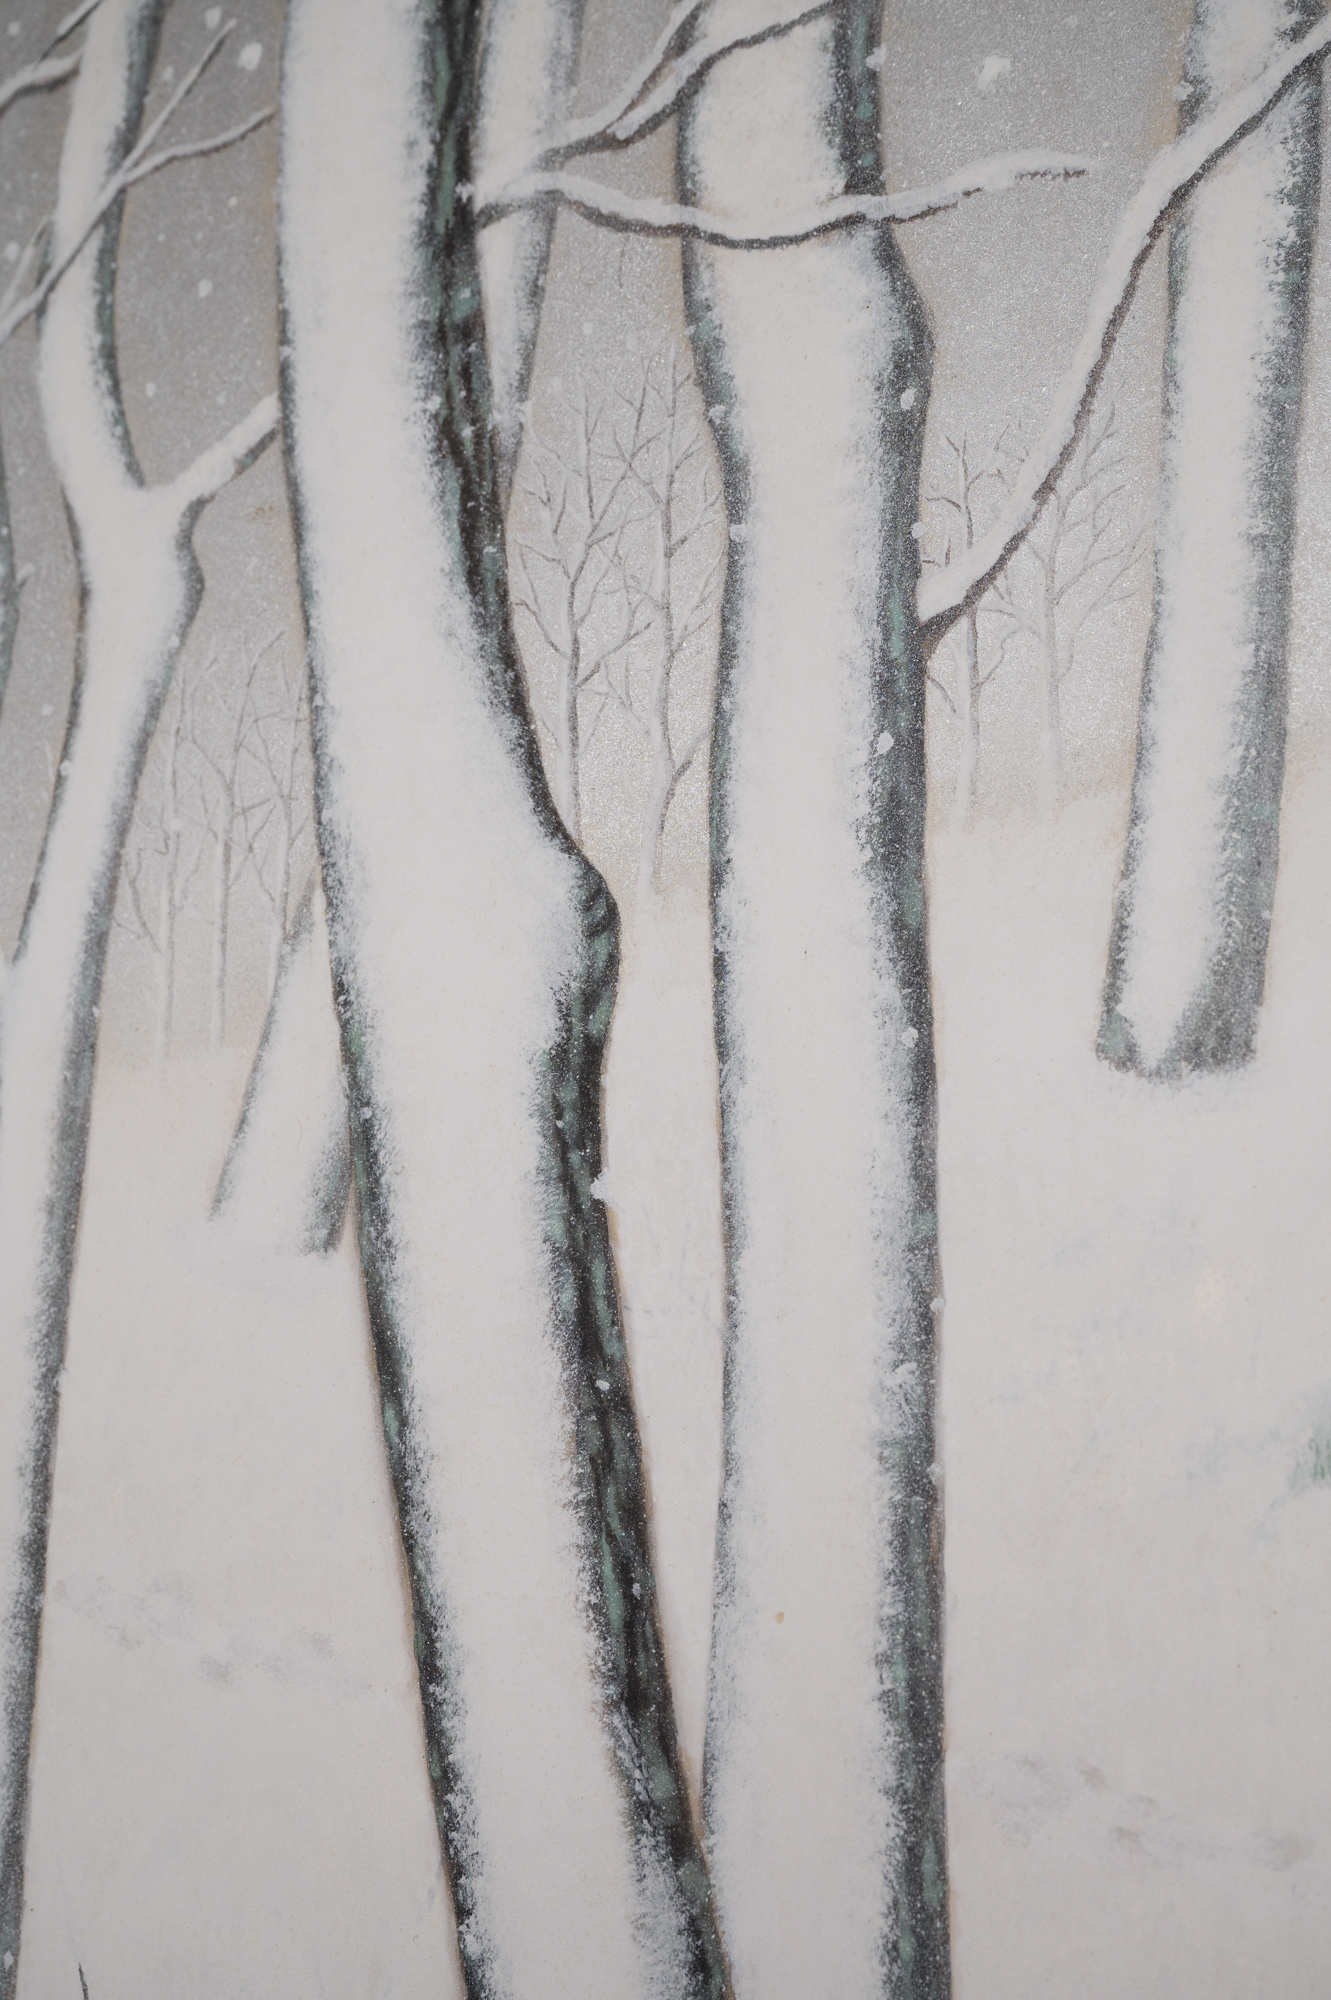 Japanese Two Panel Screen: Snow Flakes Falling in the Forest